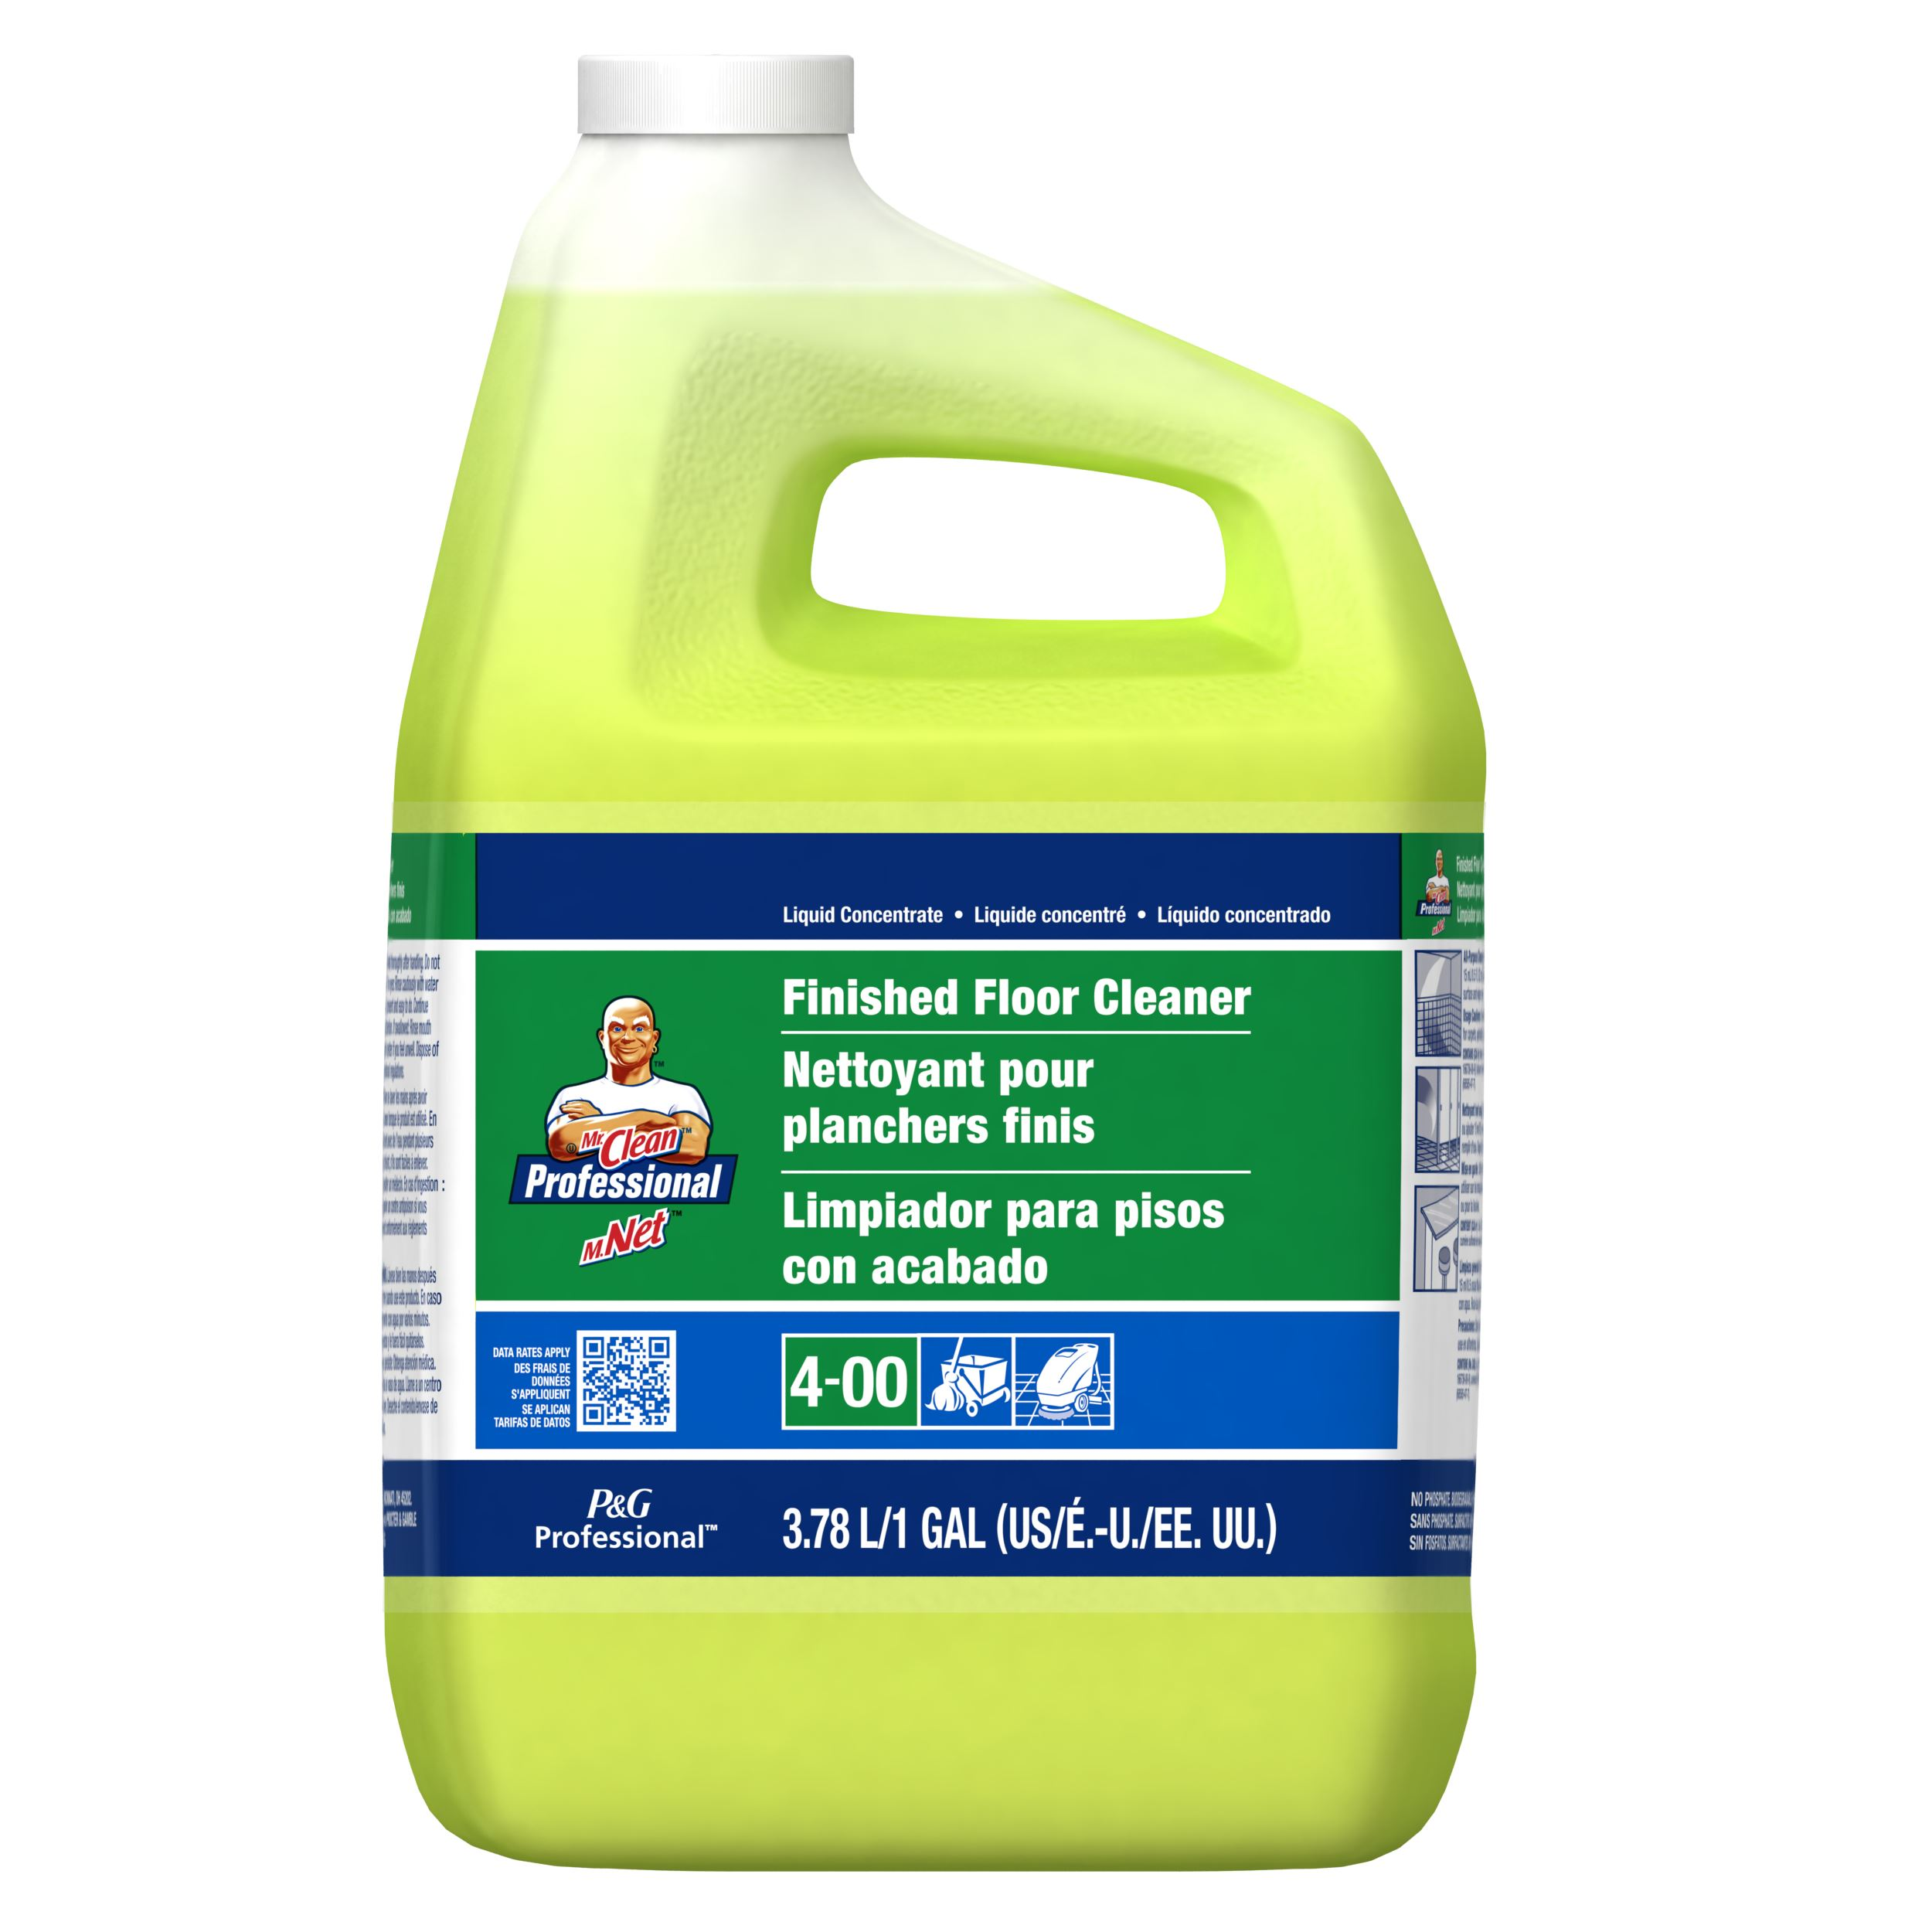 MR. CLEAN FINISHED FLOOR CLEANER 1 GALLON CONCENTRATE